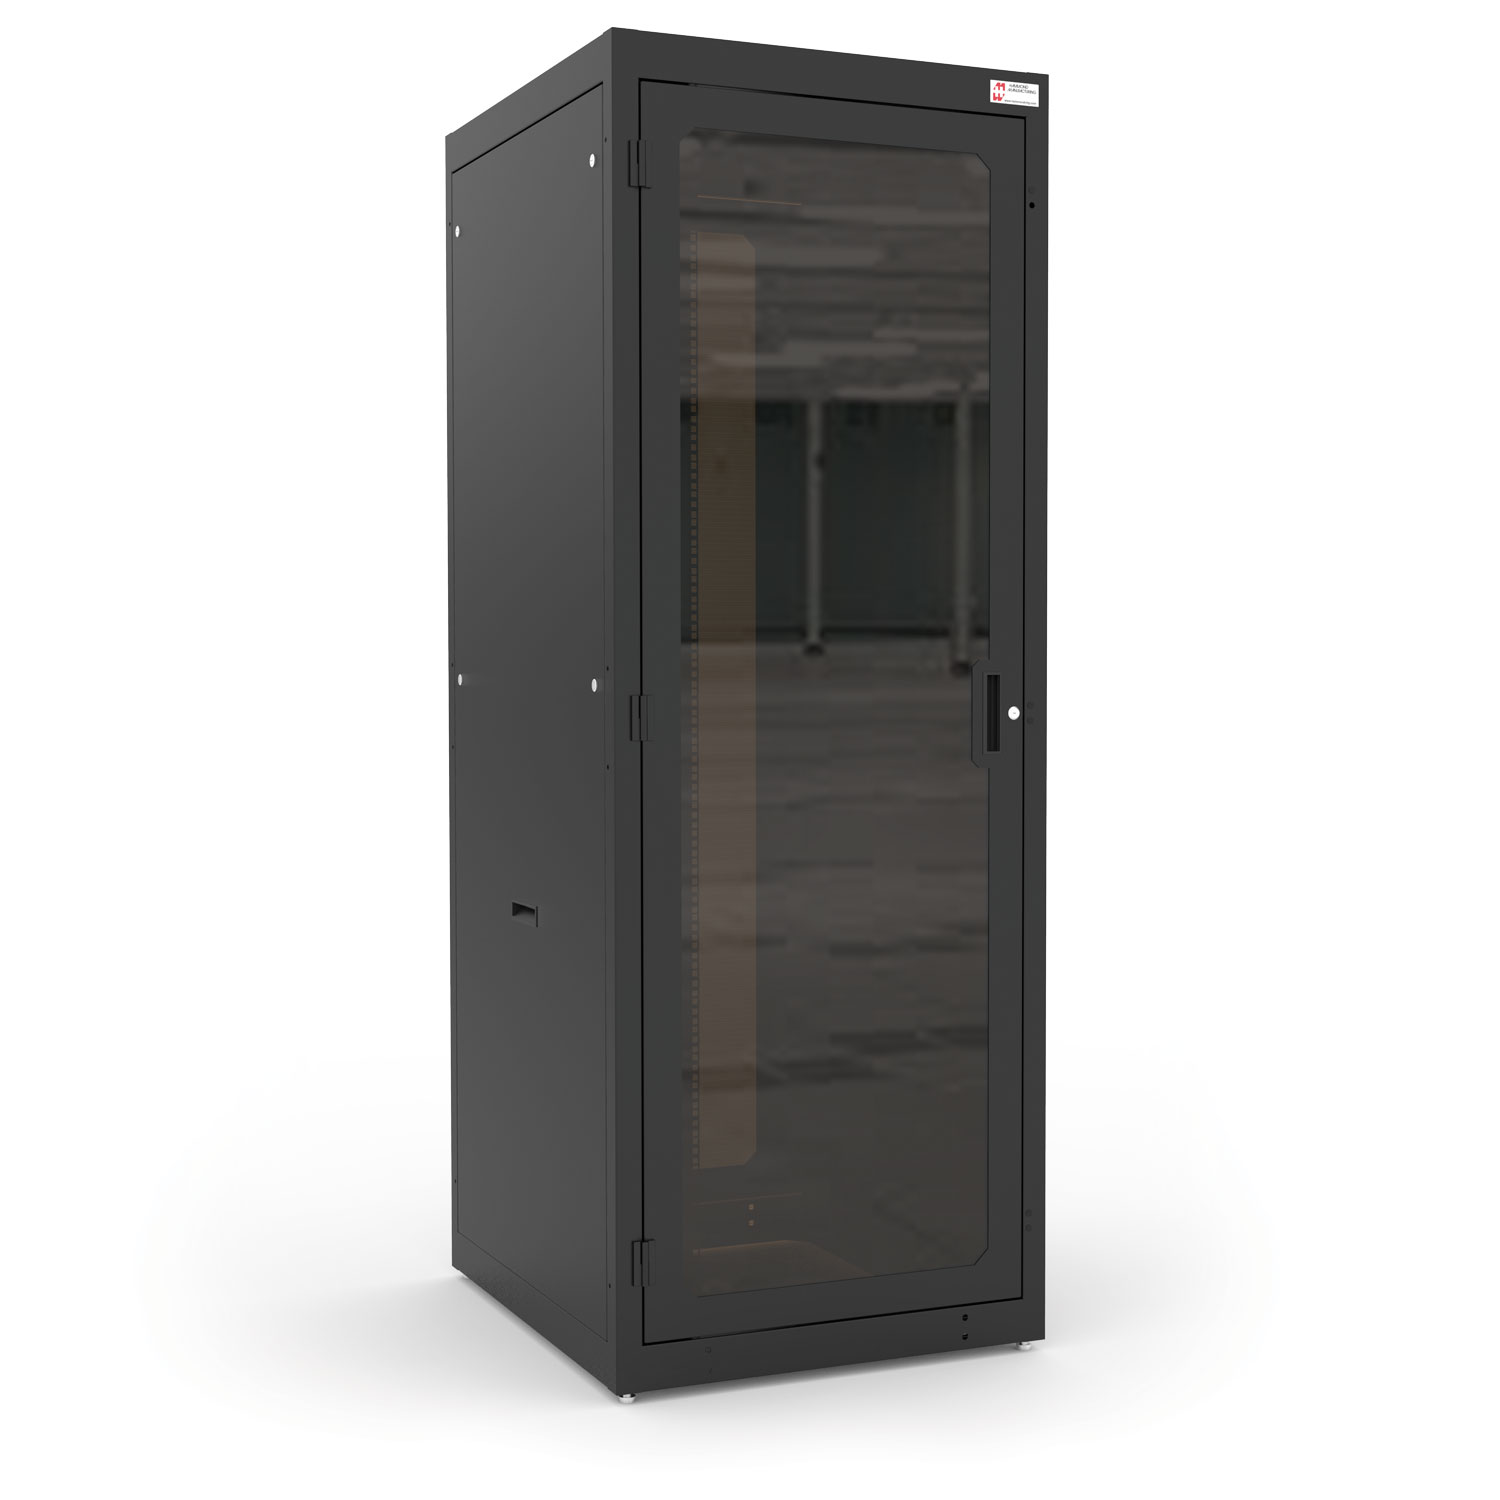 small rack network furniture equipment mounted computer enclosed shelf server and cabinet racks cabinets wall it lockable mount home enclosure